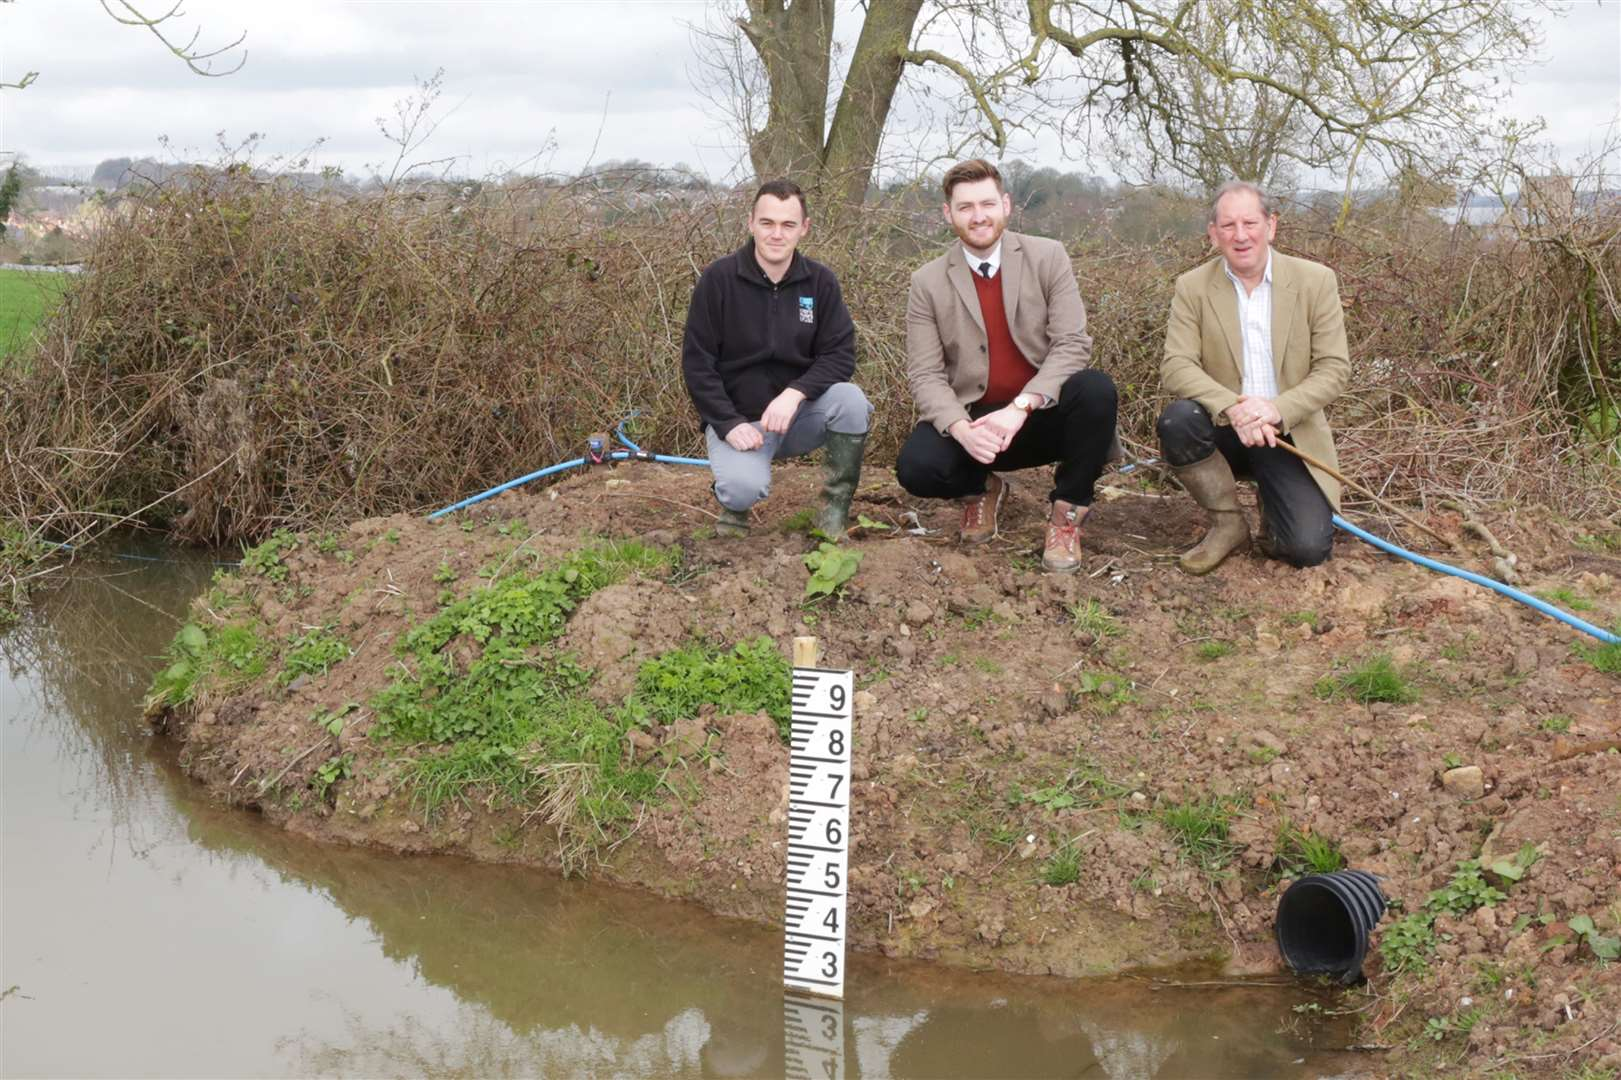 Flood Risk Reduction, Southwell..L-R Josh Wells, Project Officer from Trent Rivers Trust, Councillor Phil Rostance, Vice Chairman for Communities and Place Committee, and land owner Neil Malik of Smithfield Park Livery Stables, Southwell beside a flood management pond on Neil Malik's land.. (7891755)